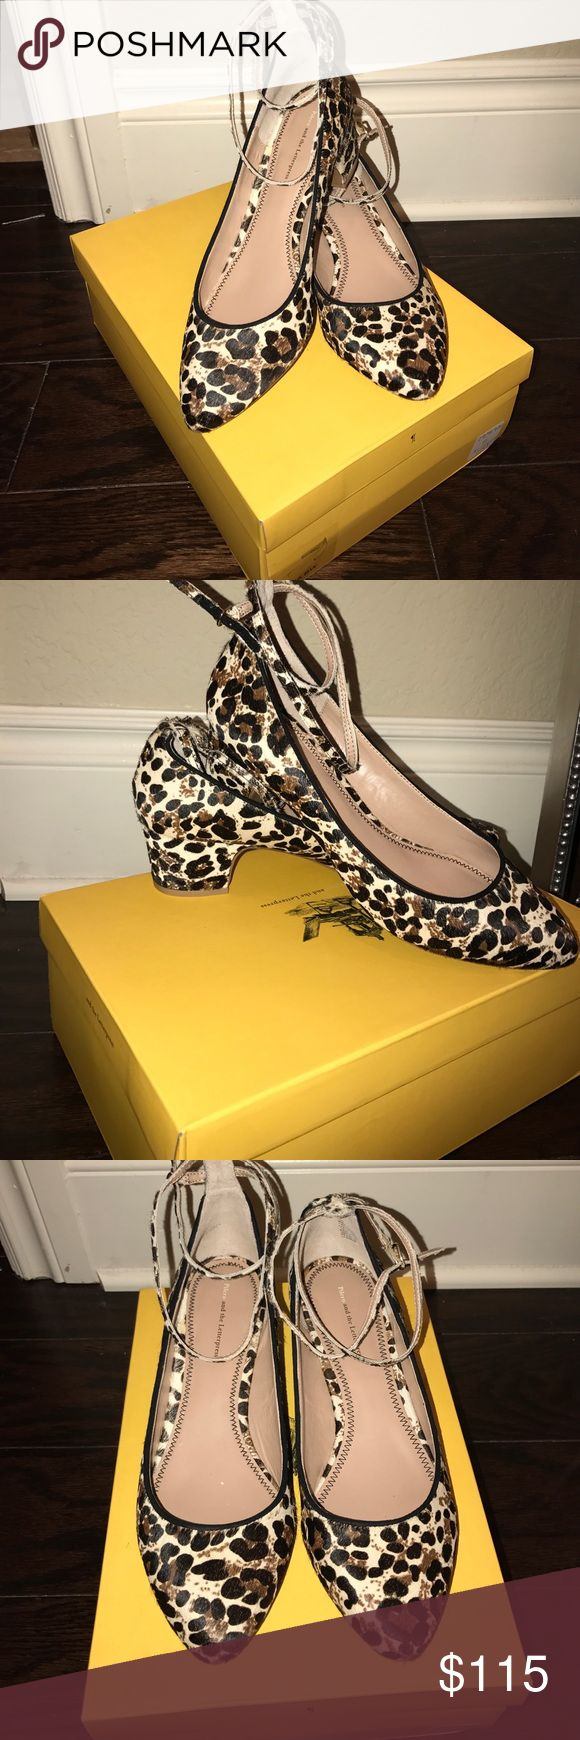 Pilero and the Letterpress Cheetah Hair Maryjanes Pony Hair cheetah print maryjane small heels. Brand new super cute- purchased at Anthropologie a few years back and sat in there box. Comes with original box and new condition. Fits a 10 perfectly or even a 9.5. Looking for a loving home Pilero and the Letterpress Shoes